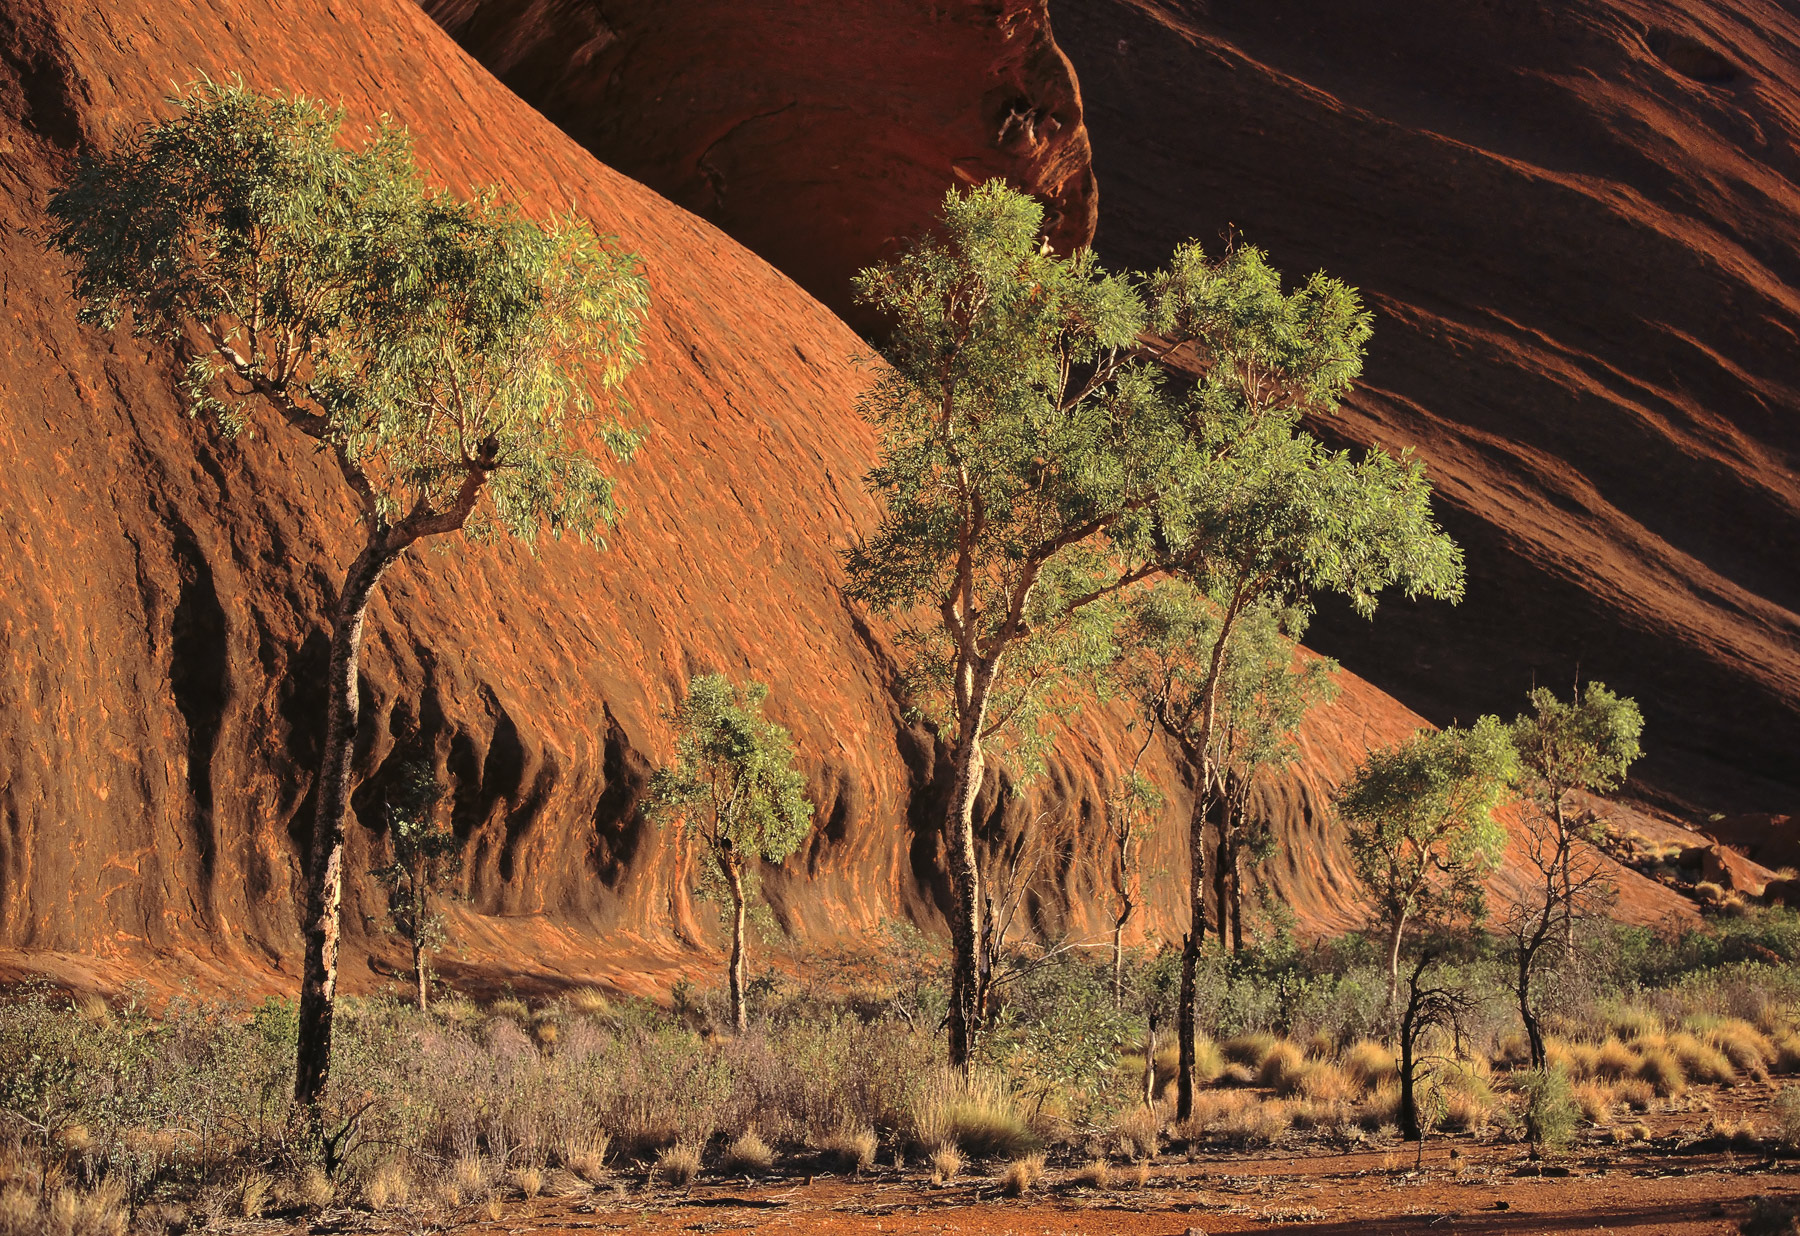 Rather than climb up Ayers Rock which seems to be regarded as a rite of passage but is never-the-less something which the native...